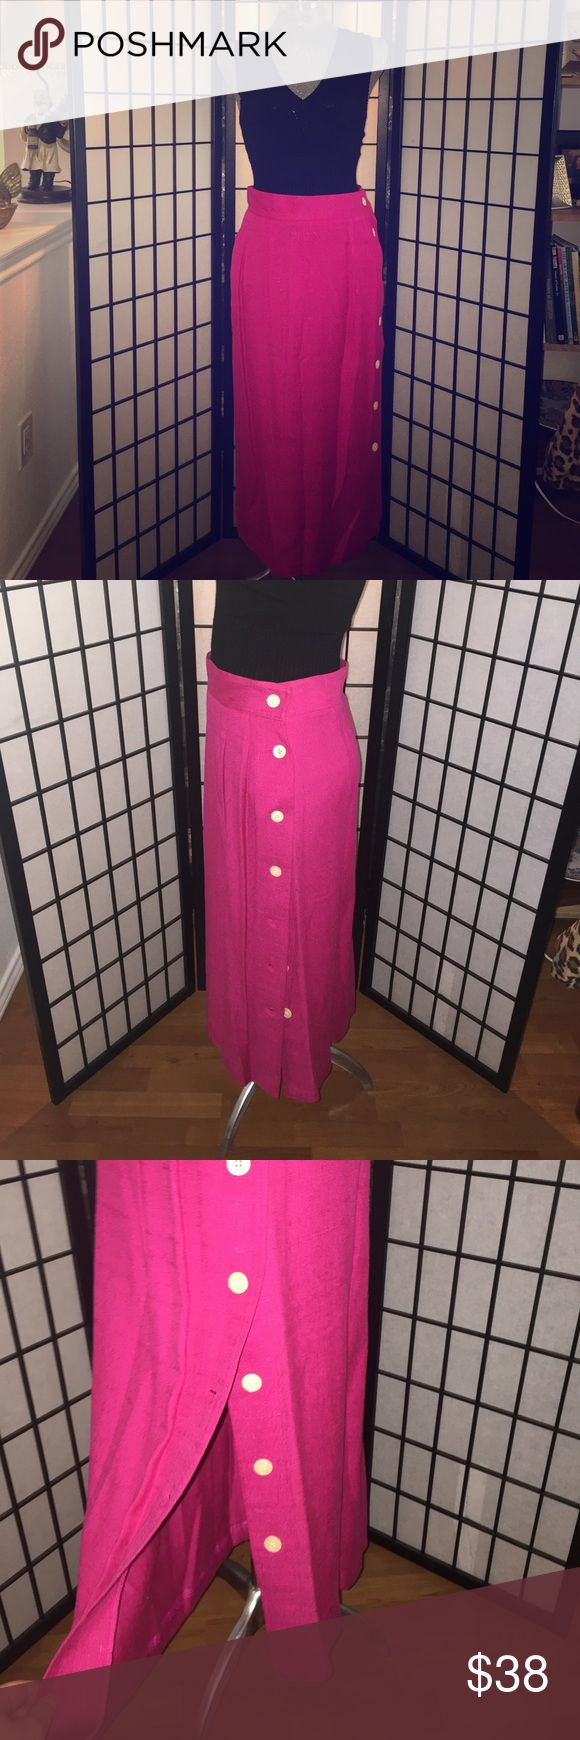 """Gorgeous Vintage Pink Long Button Down Linen Skirt Authentic Vintage w Tags. Never Worn. This color is Fab! Beautiful magenta with white pearlescent buttons down the left side of skirt. Made by Chaus. Size 12. 85% Viscose 15% Linen. Approx 31"""" Long 14.5"""" Across waist. Nonsmoking home. Chaus Skirts"""